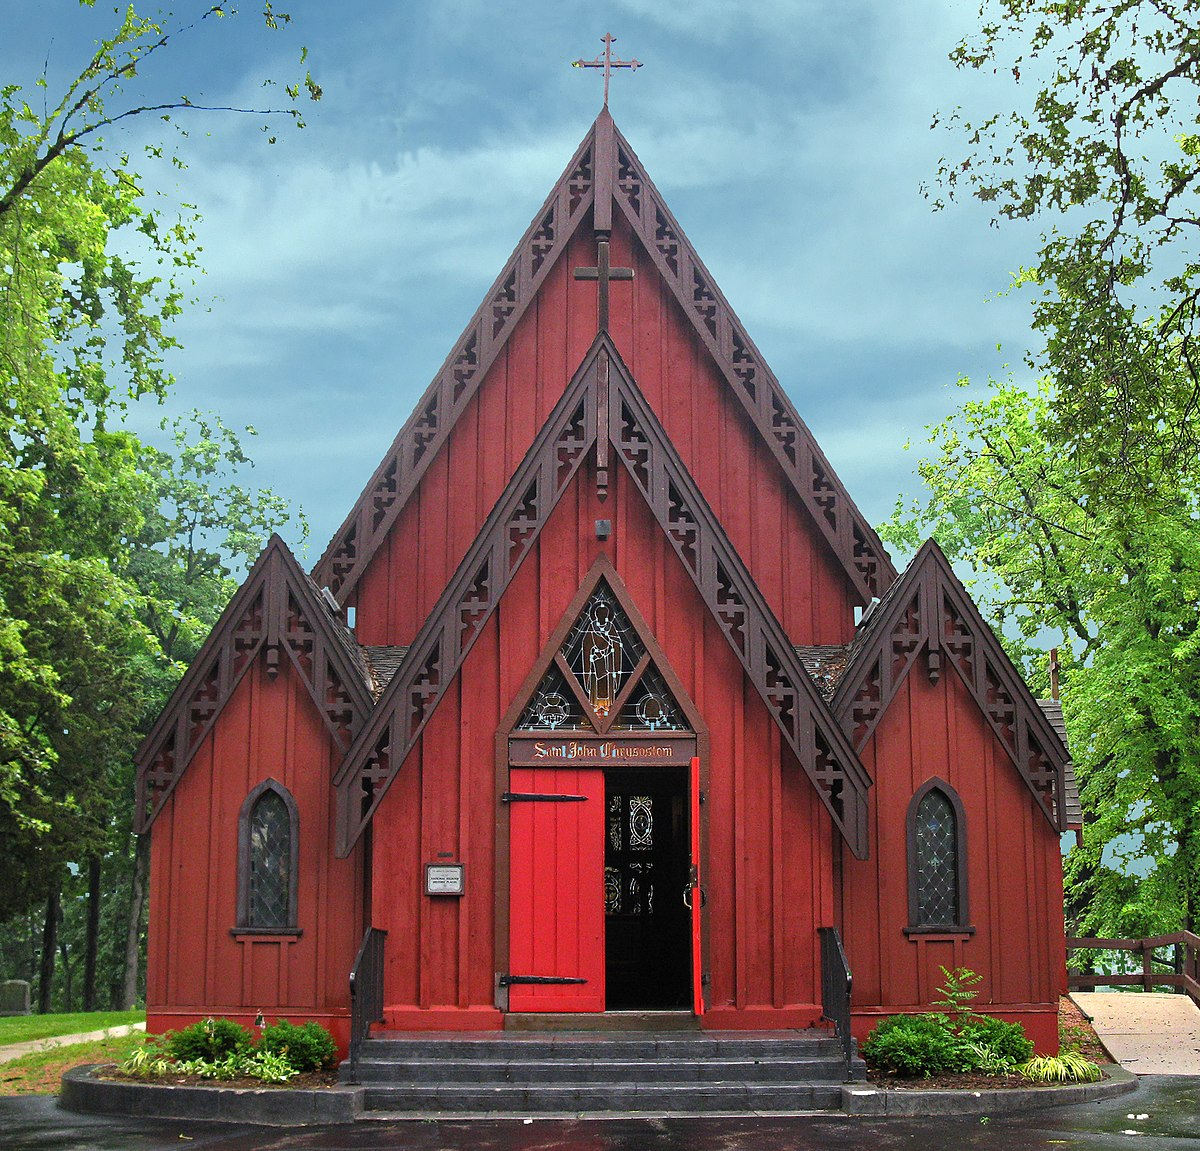 St john chrysostom church delafield wisconsin wikipedia for Churches for sale in ny